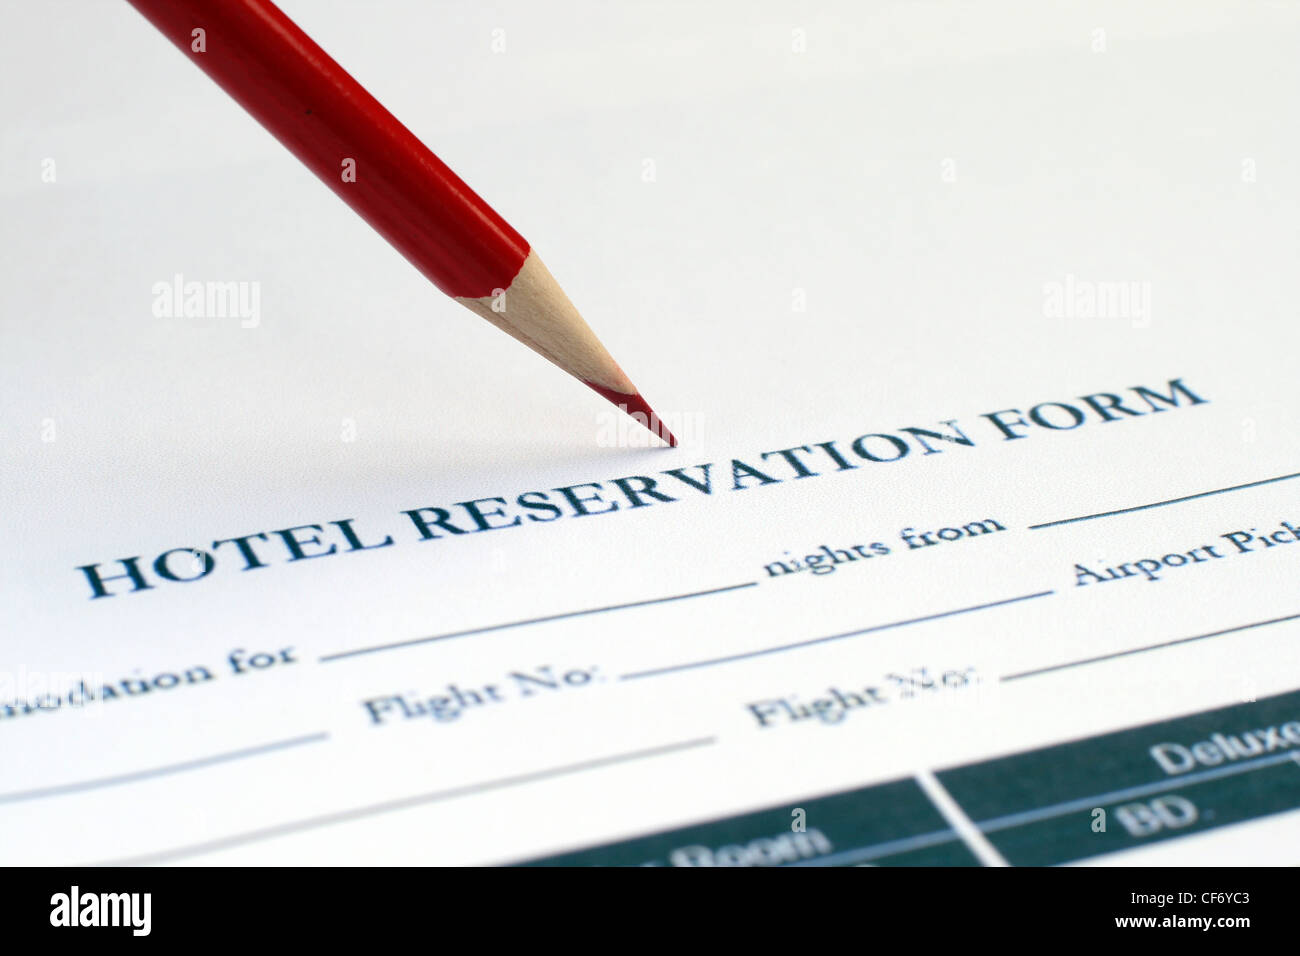 Hotel reservation form stock photos hotel reservation form stock hotel reservation form stock image thecheapjerseys Choice Image